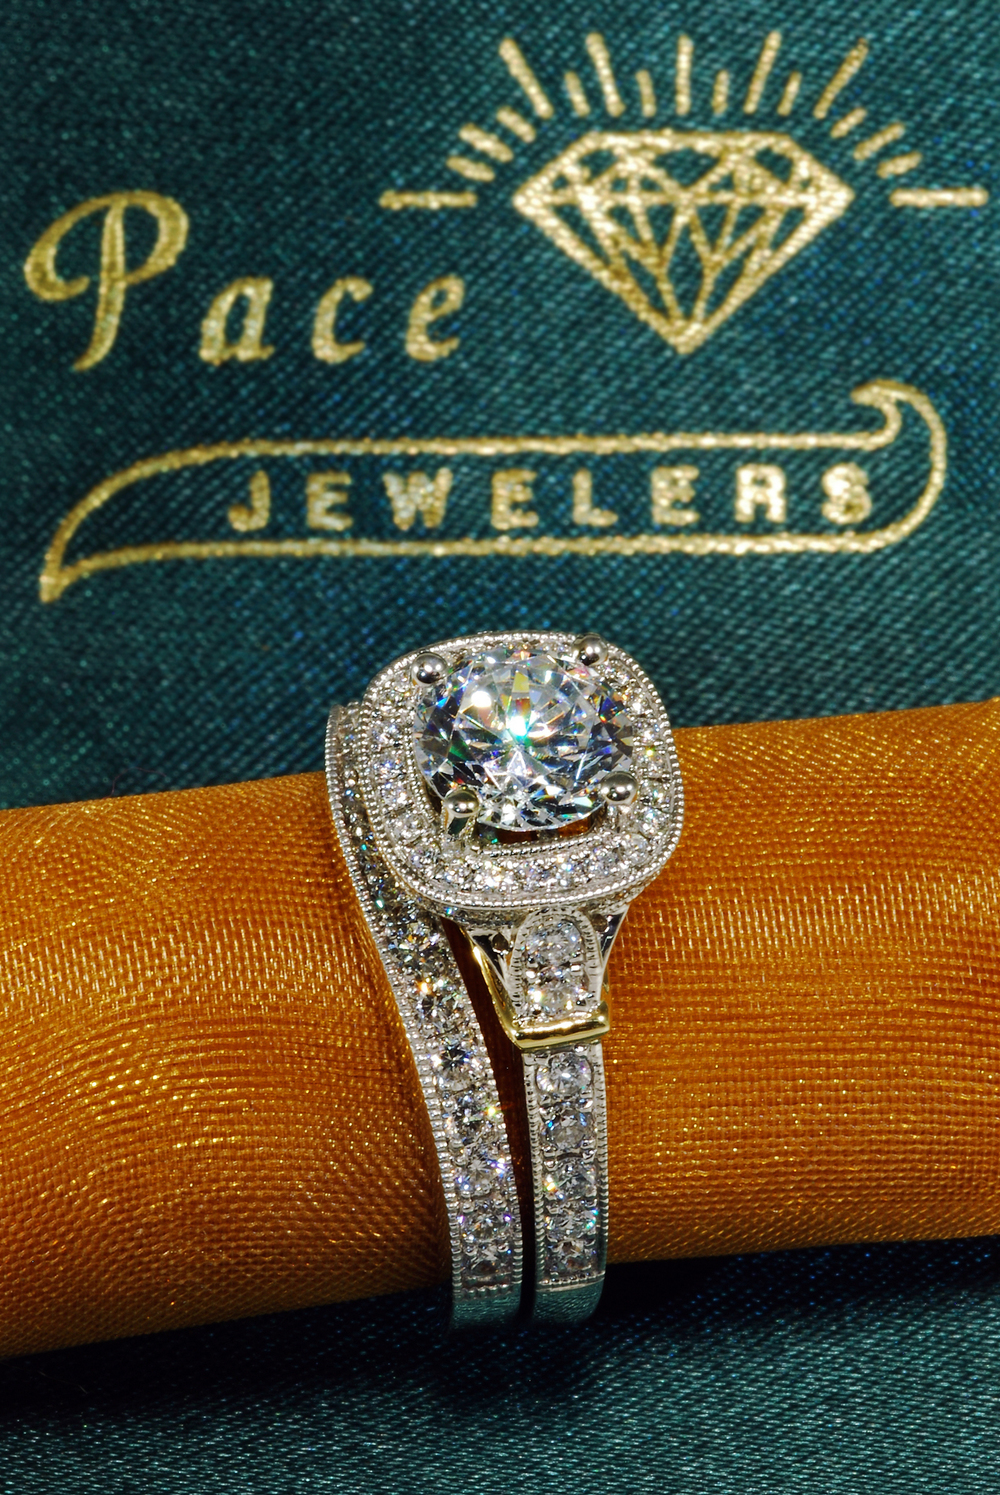 When freelancing for Pace Jeweler's I had the opportunity to shoot fine jewelry product photography. This particular image captures the beauty of the ring in the foreground while also showcasing Pace's logo on the ring box interior in the background.